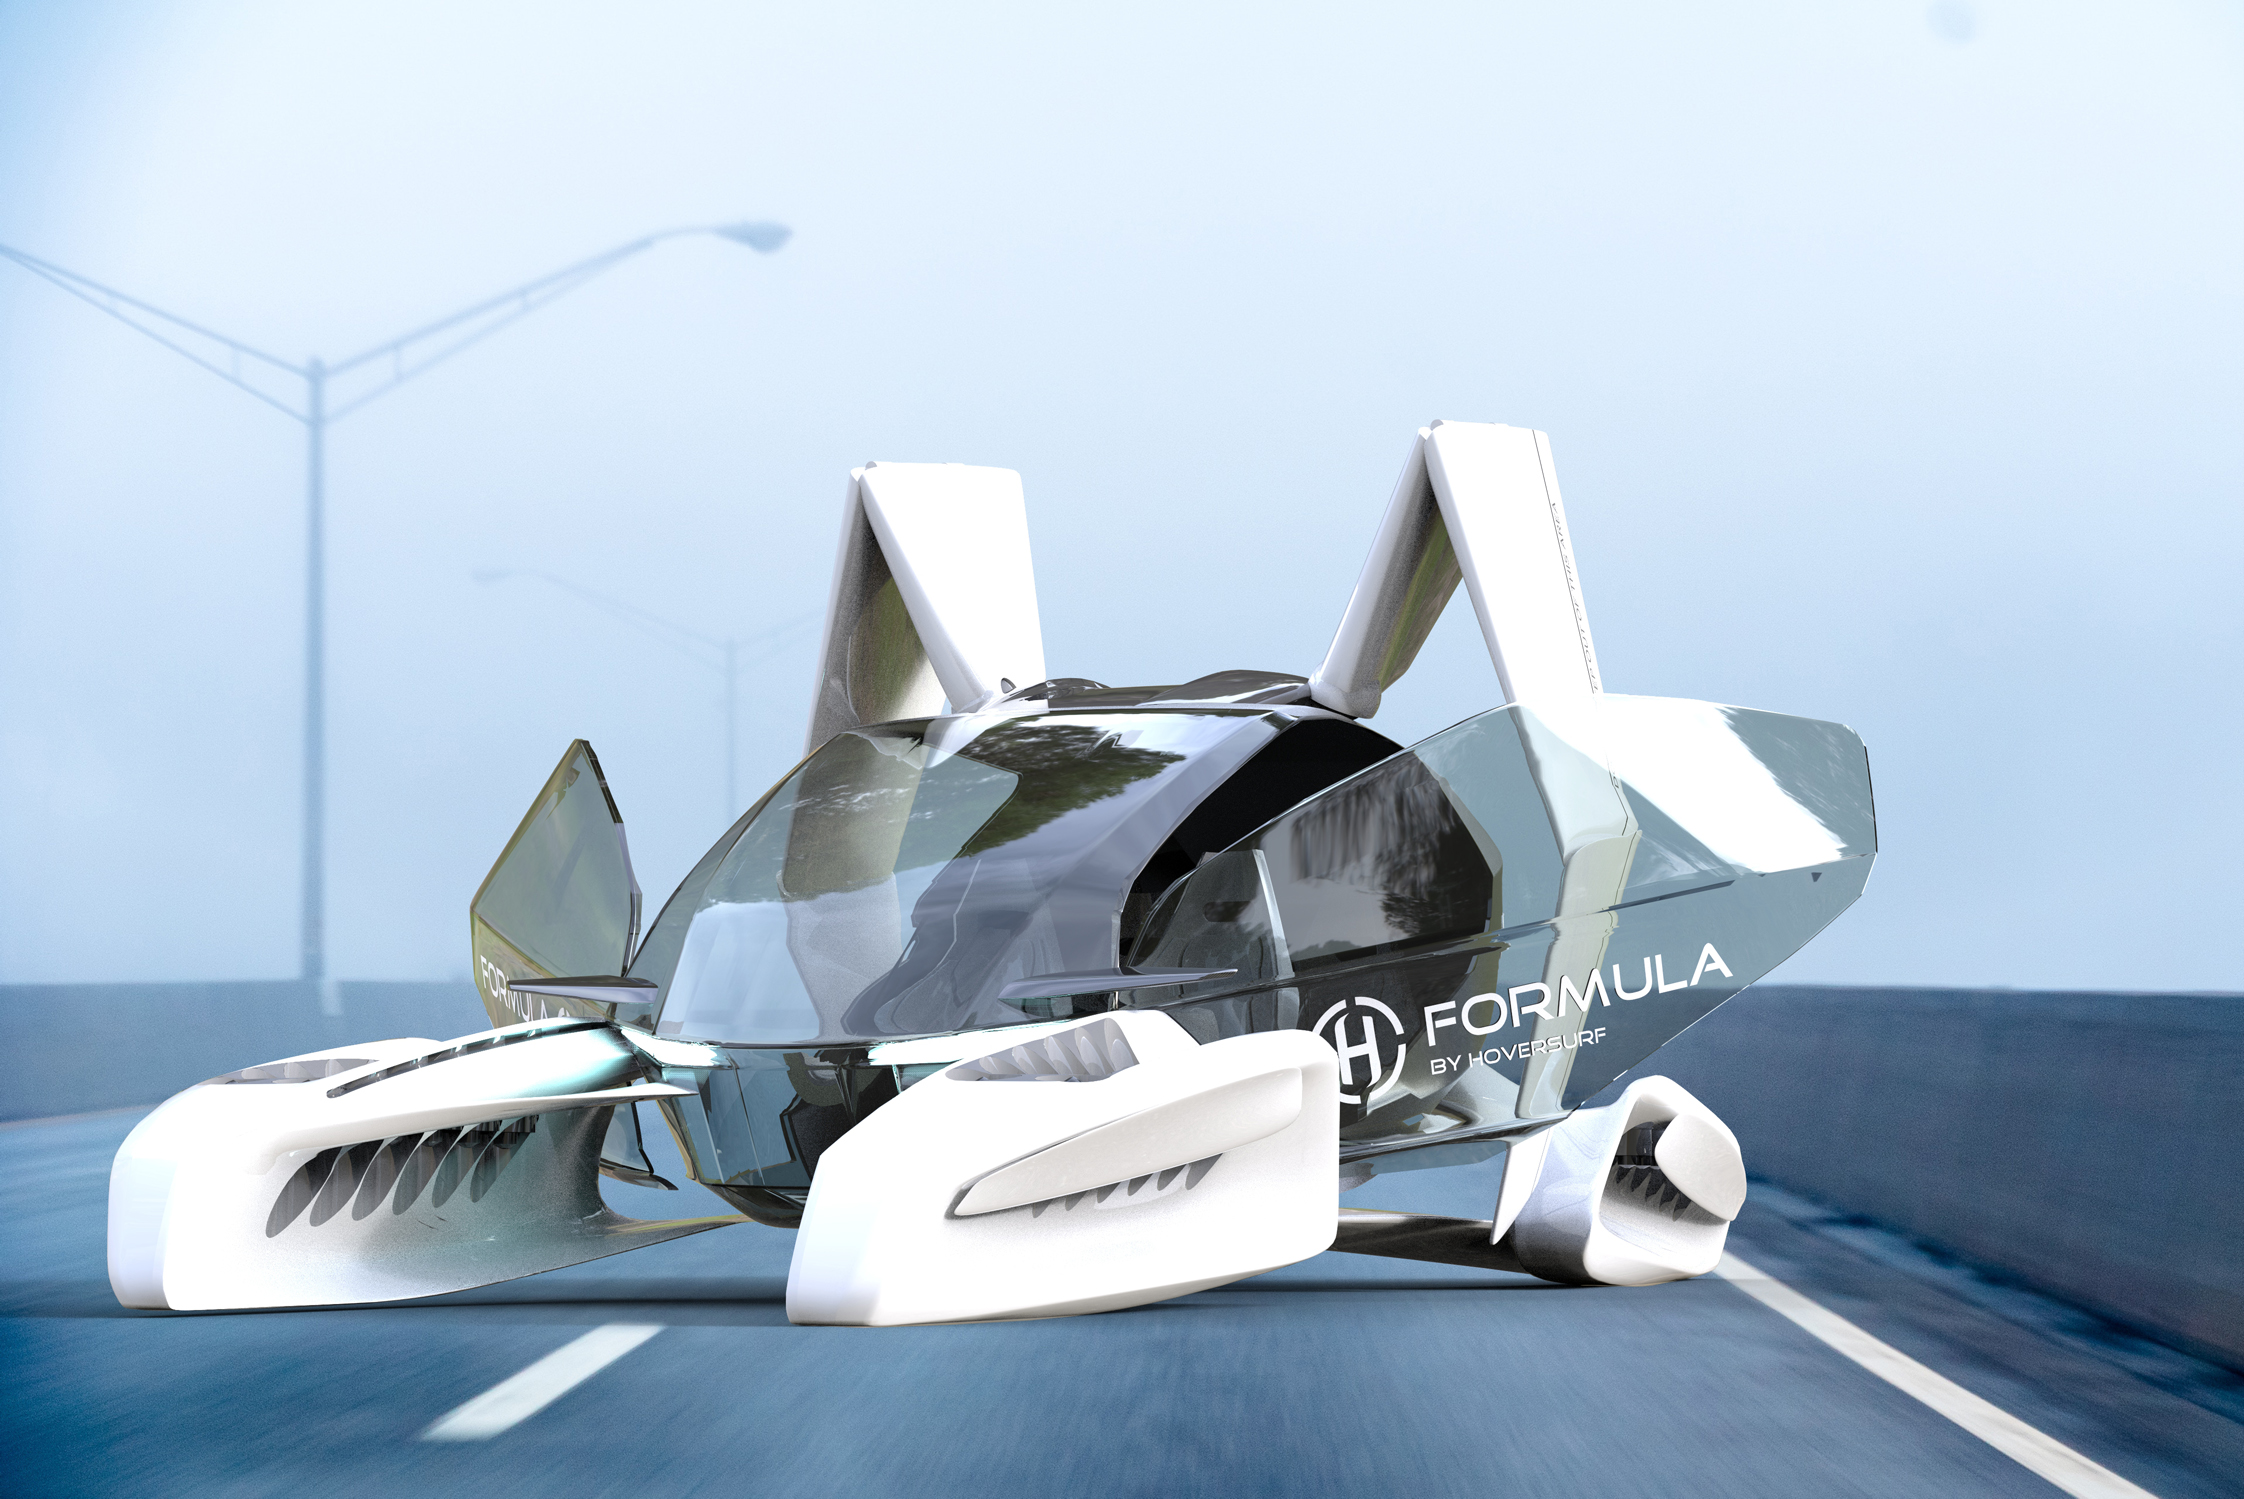 FORMULA flying taxi concept vehicle.